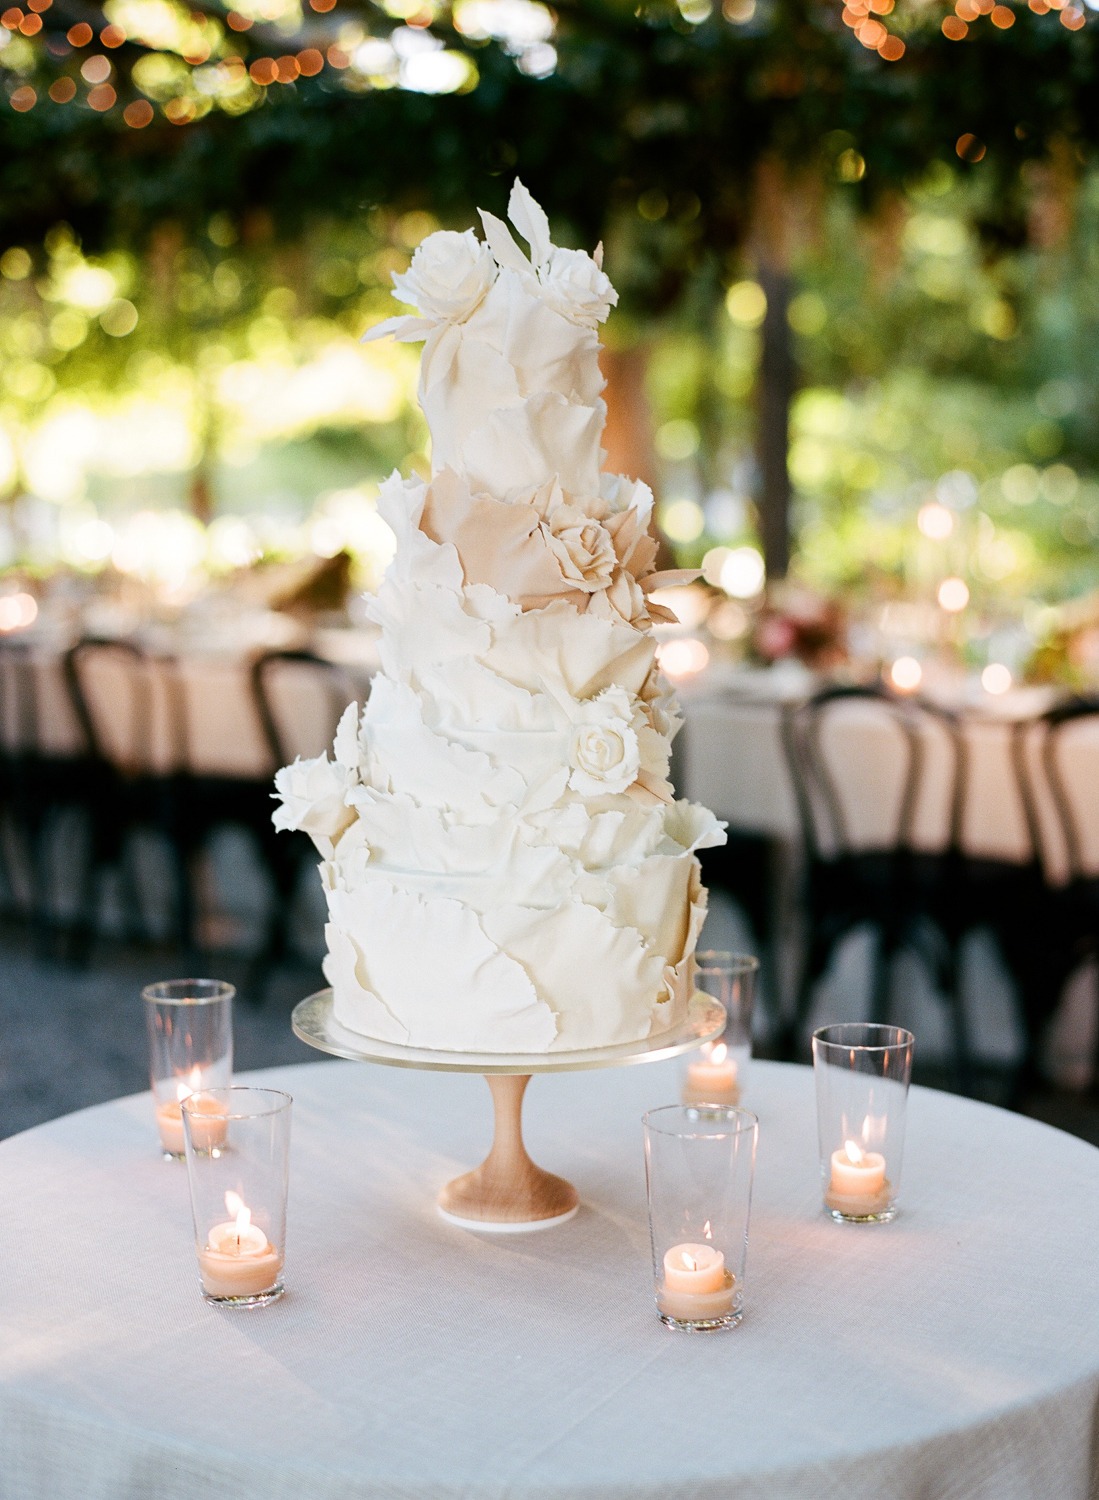 four laired wedding cake with petal frosted texture design in white and beige